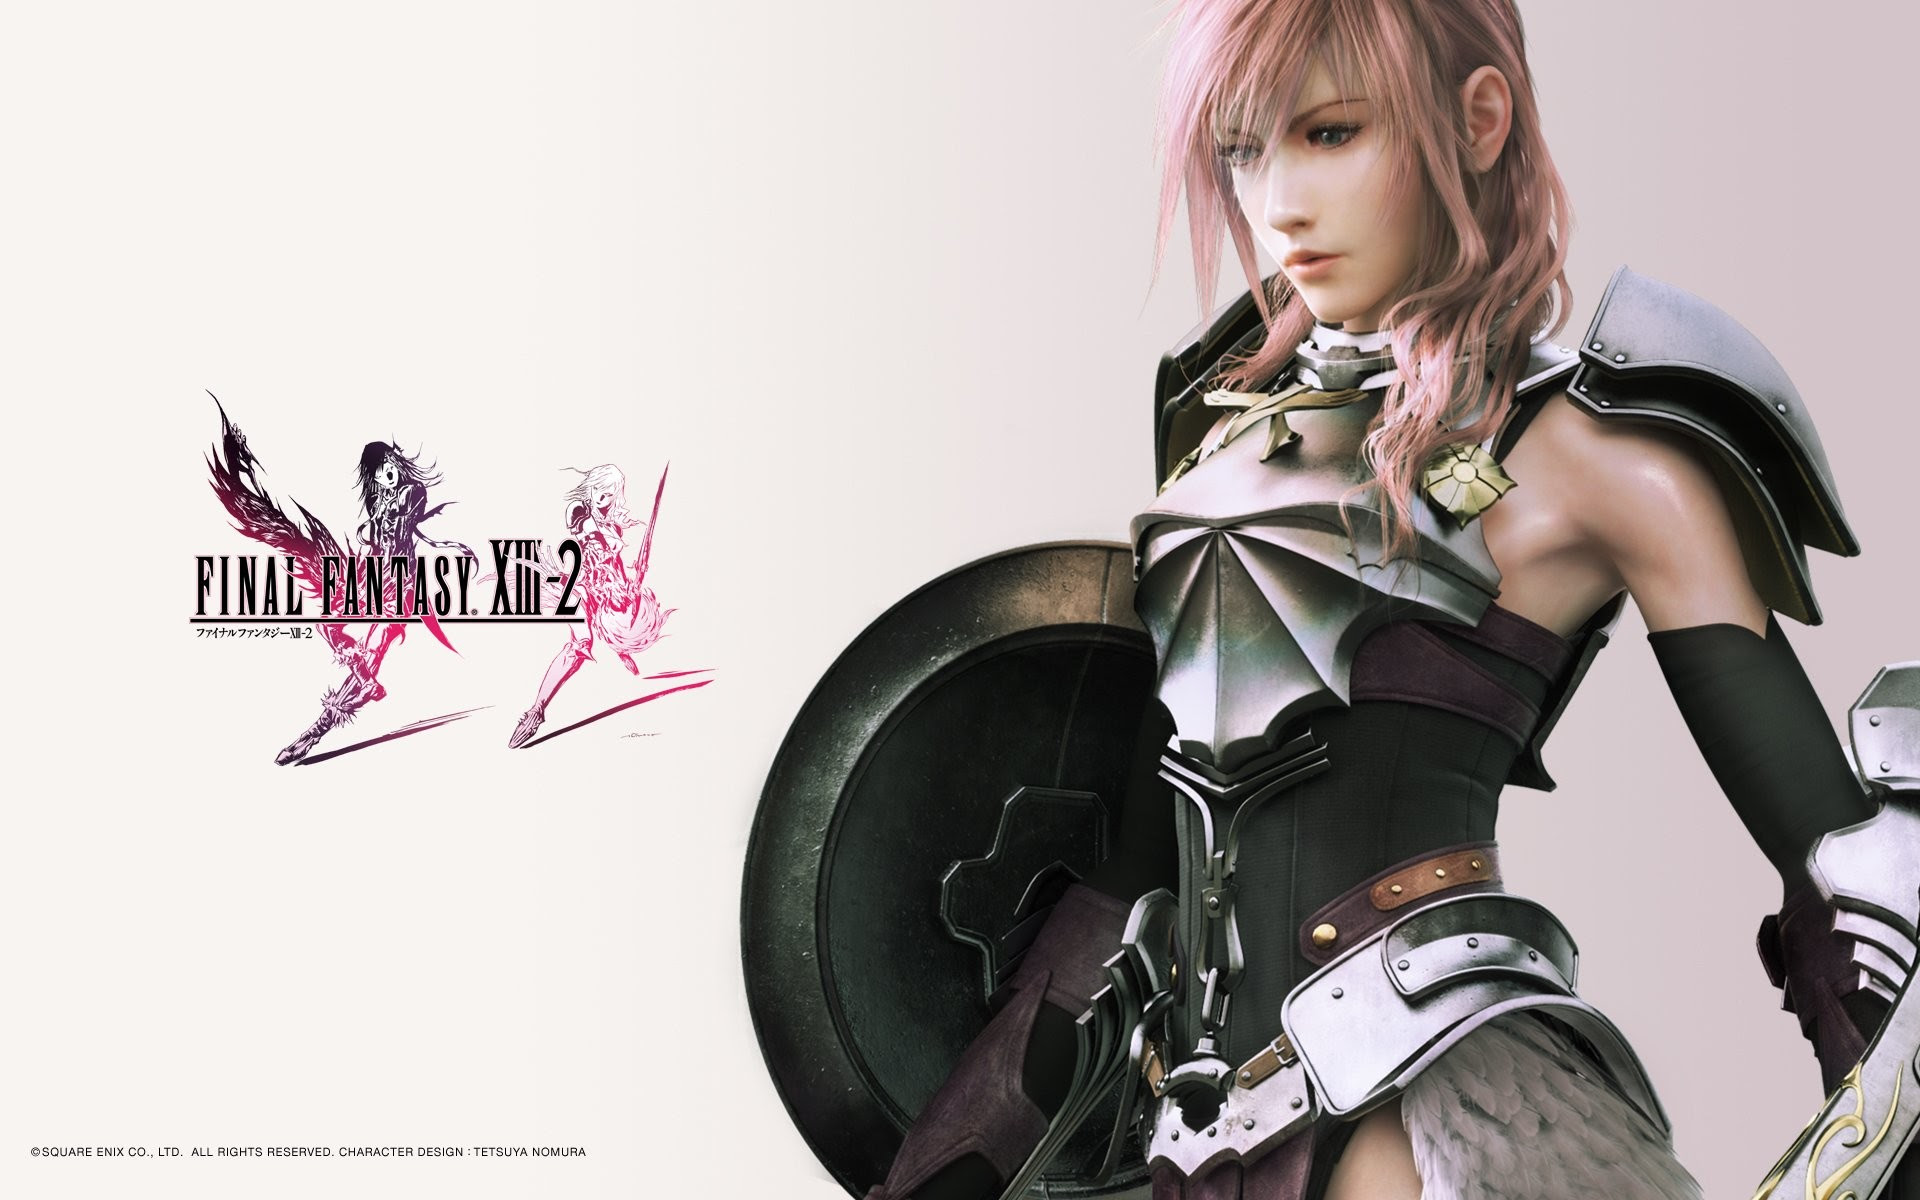 Final Fantasy Xiii 2 Wallpaper 88 Images